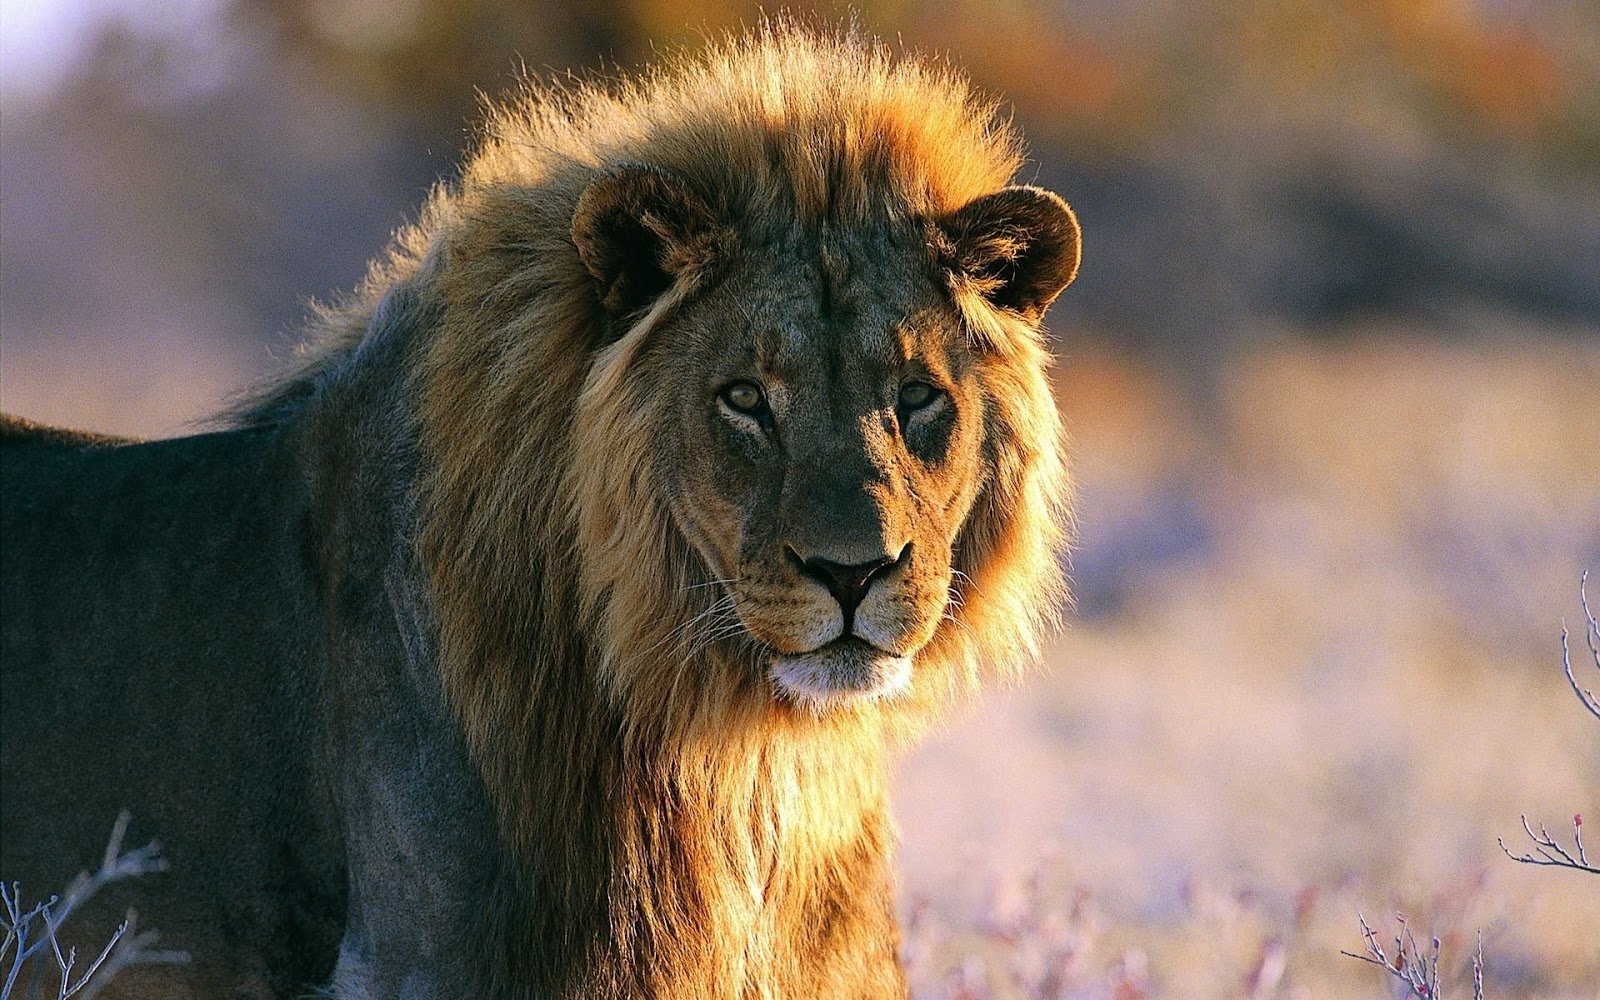 Hd wallpaper lion - Letest And Best Lion Hd Wallpapers Lion Desktop Backgrounds Photos In Hd Widescreen High Quality